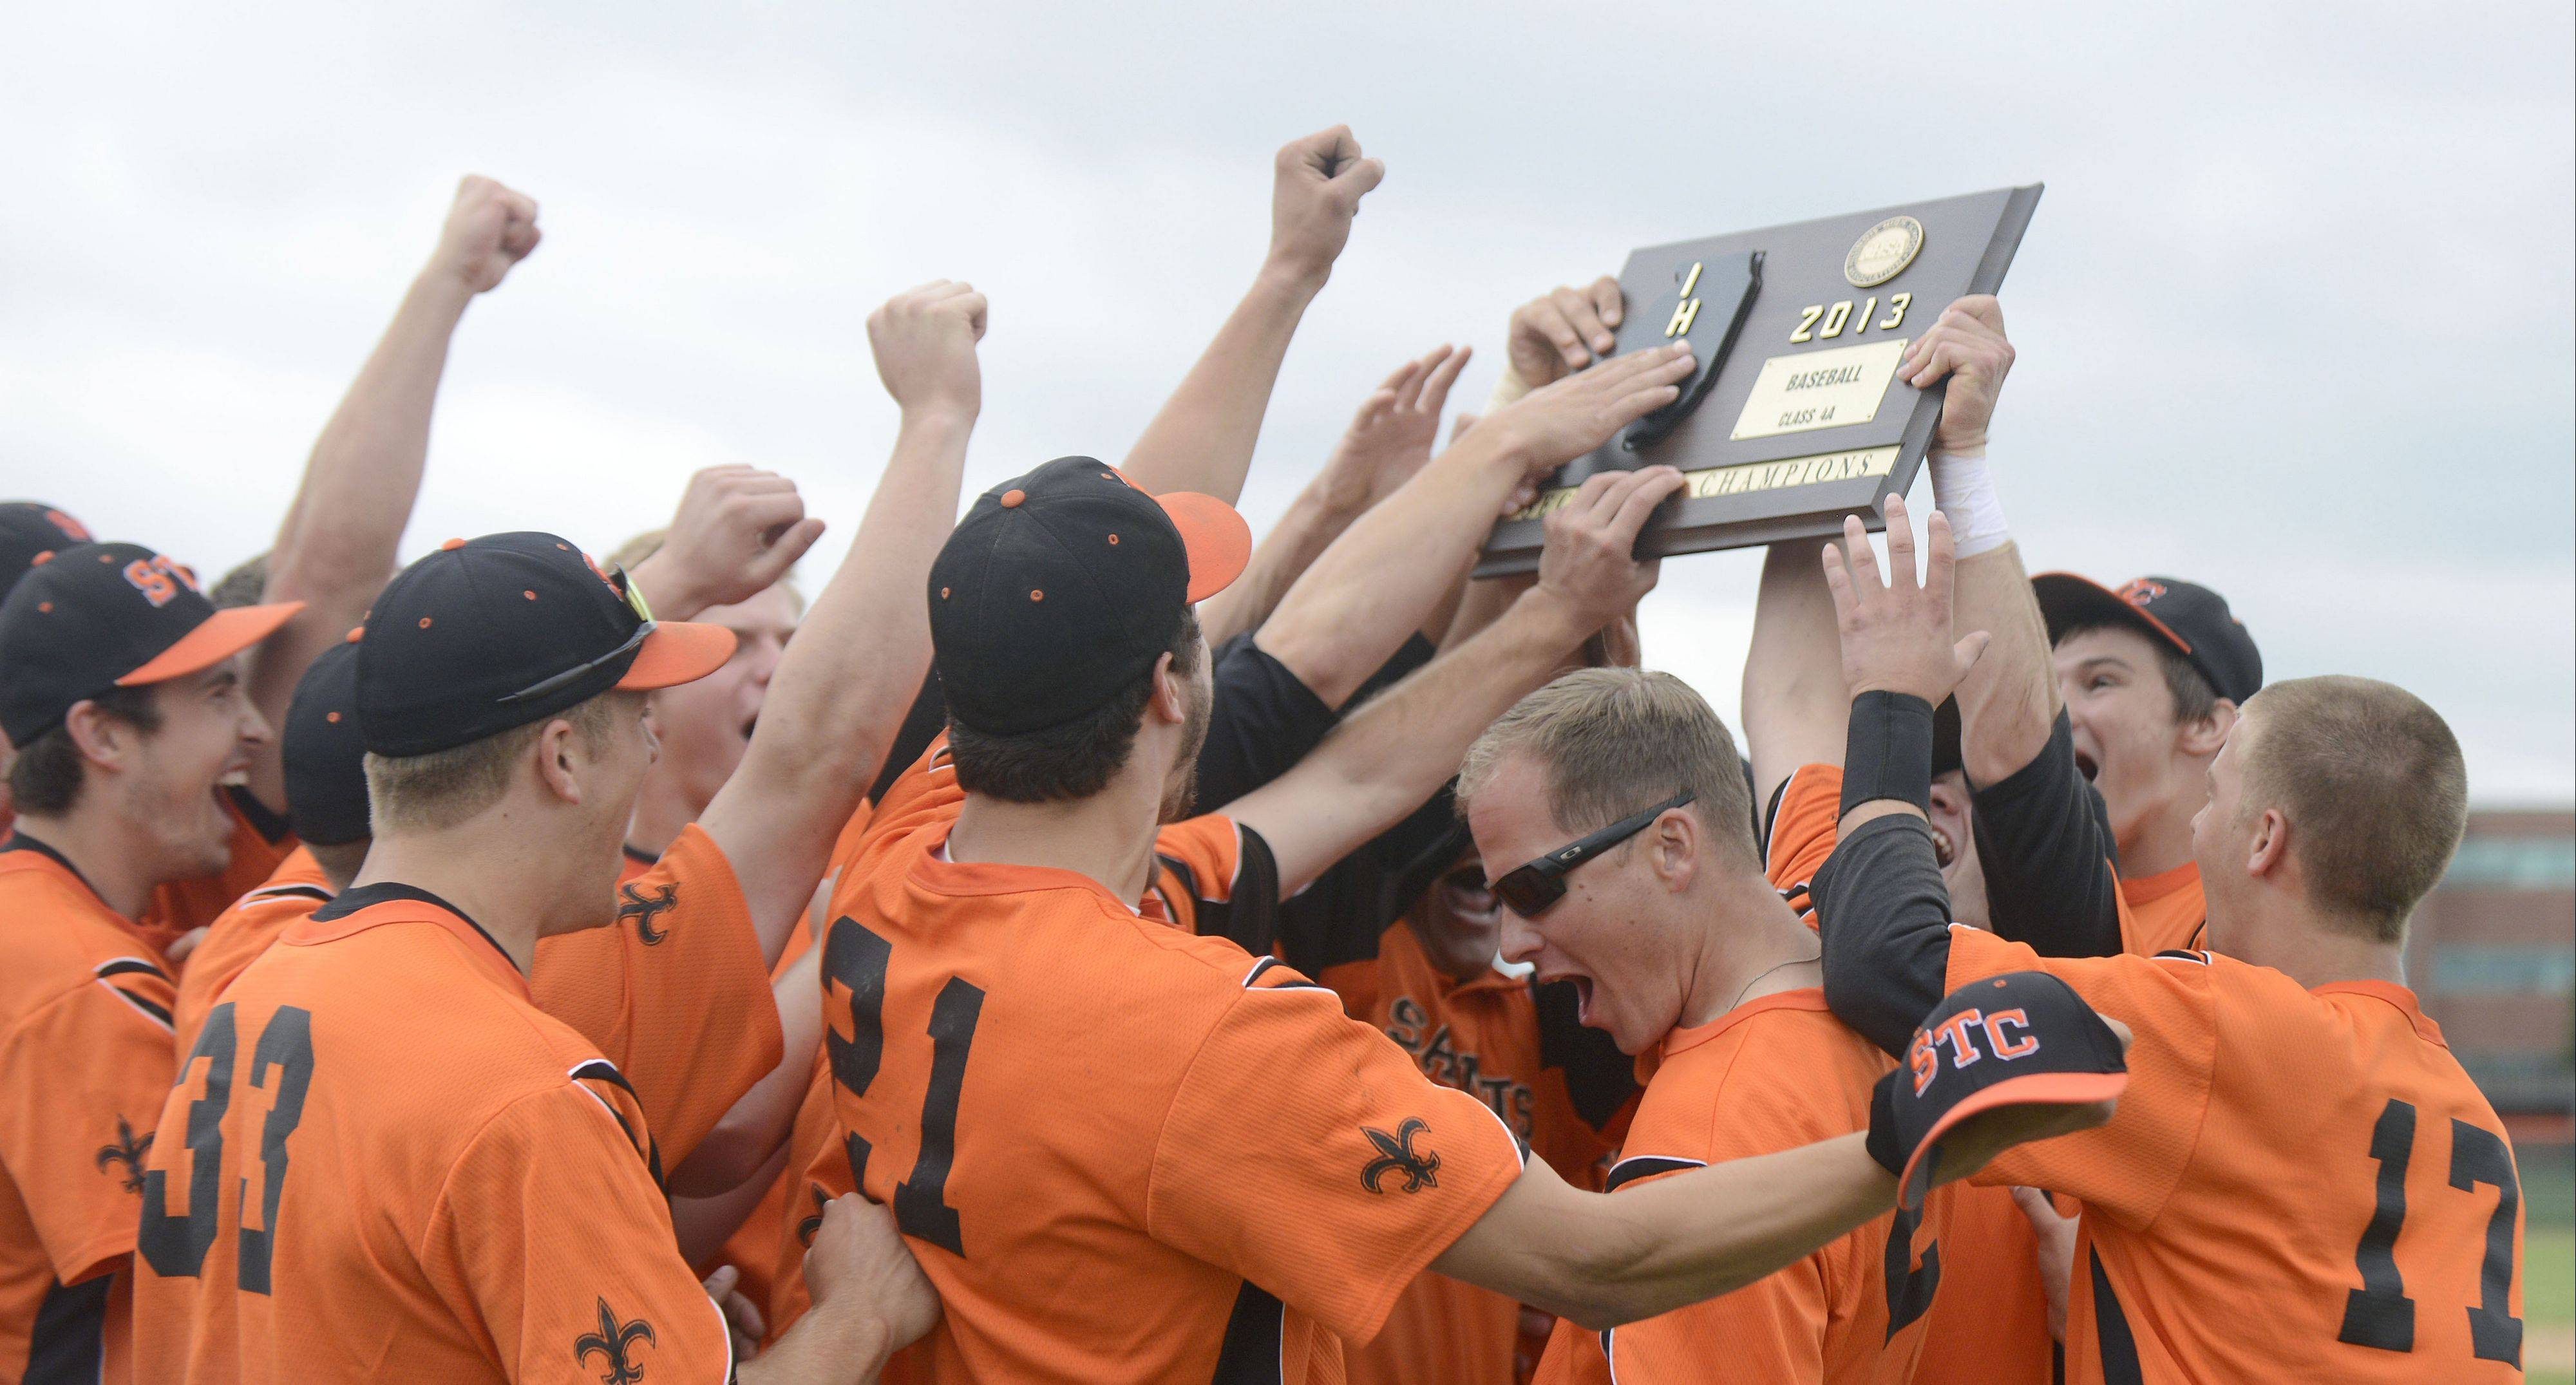 St. Charles East celebrates its Class 4A sectional championship over Wheaton North on Saturday in St. Charles.